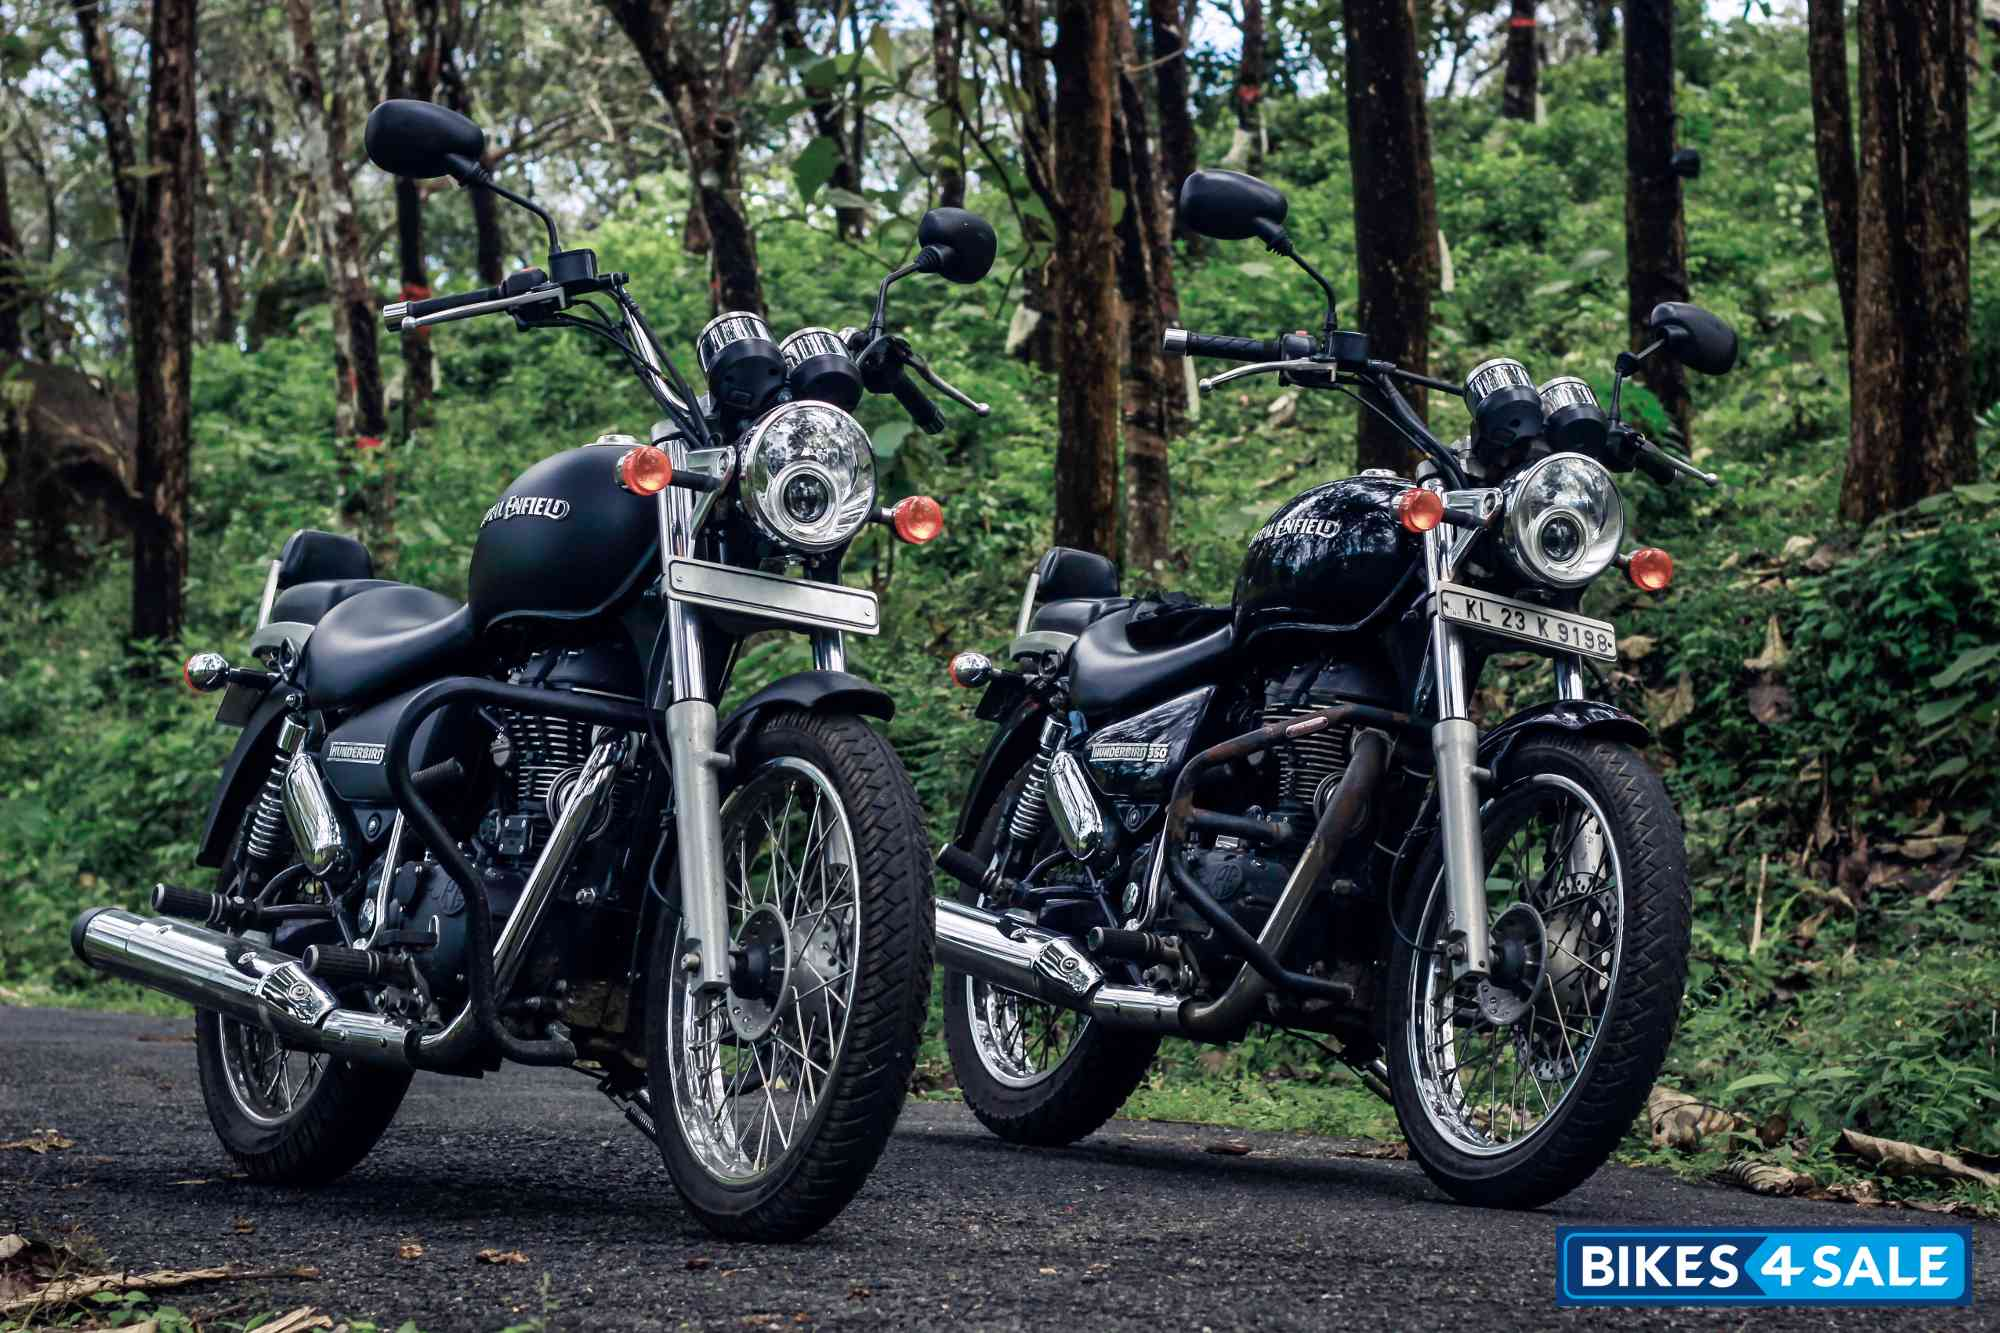 Royal Enfield Thunderbird TwinSpark 350